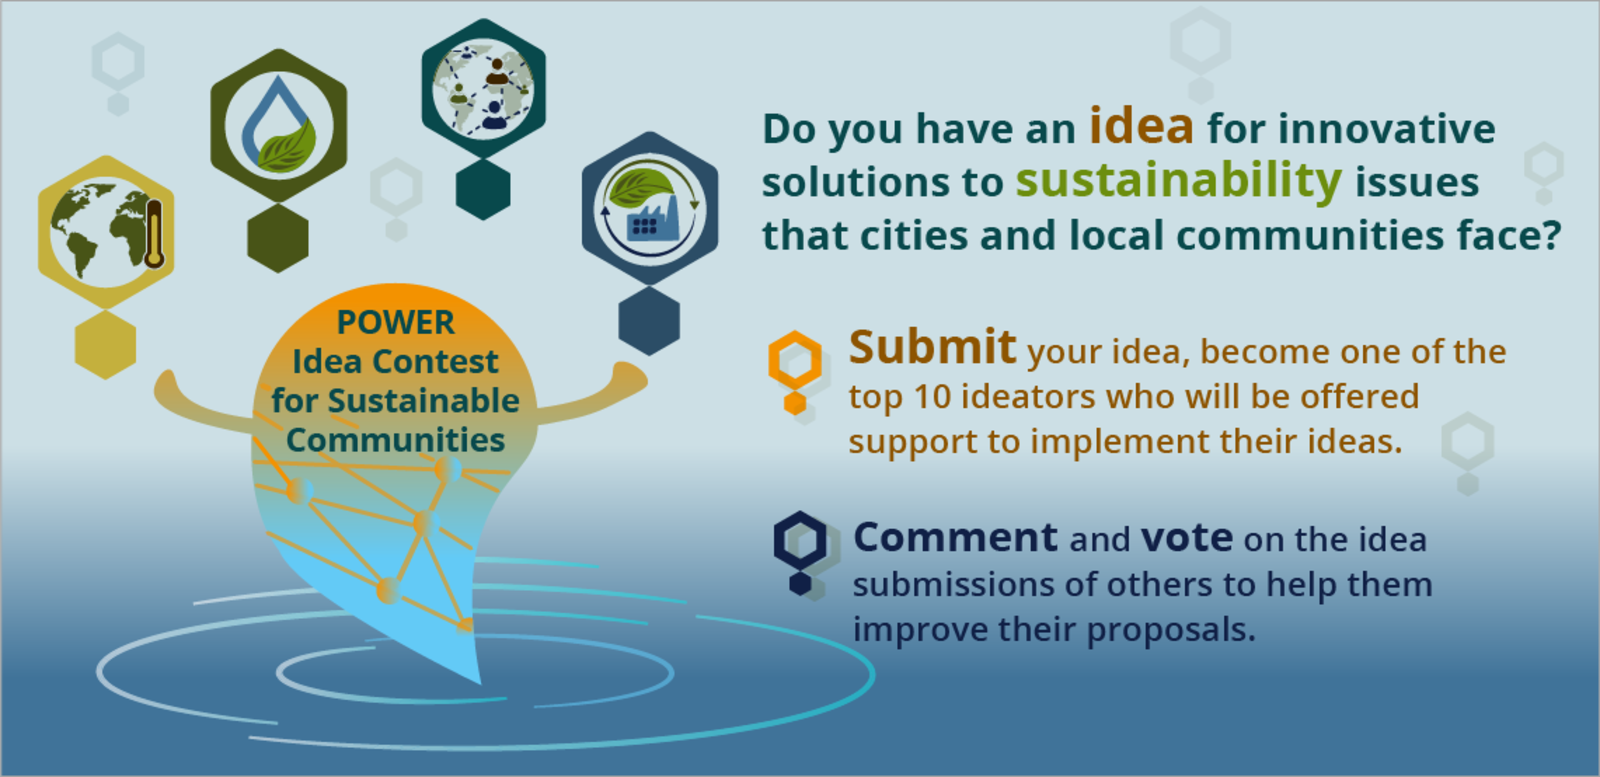 Learn about the POWER Idea Contest for Sustainable Communities